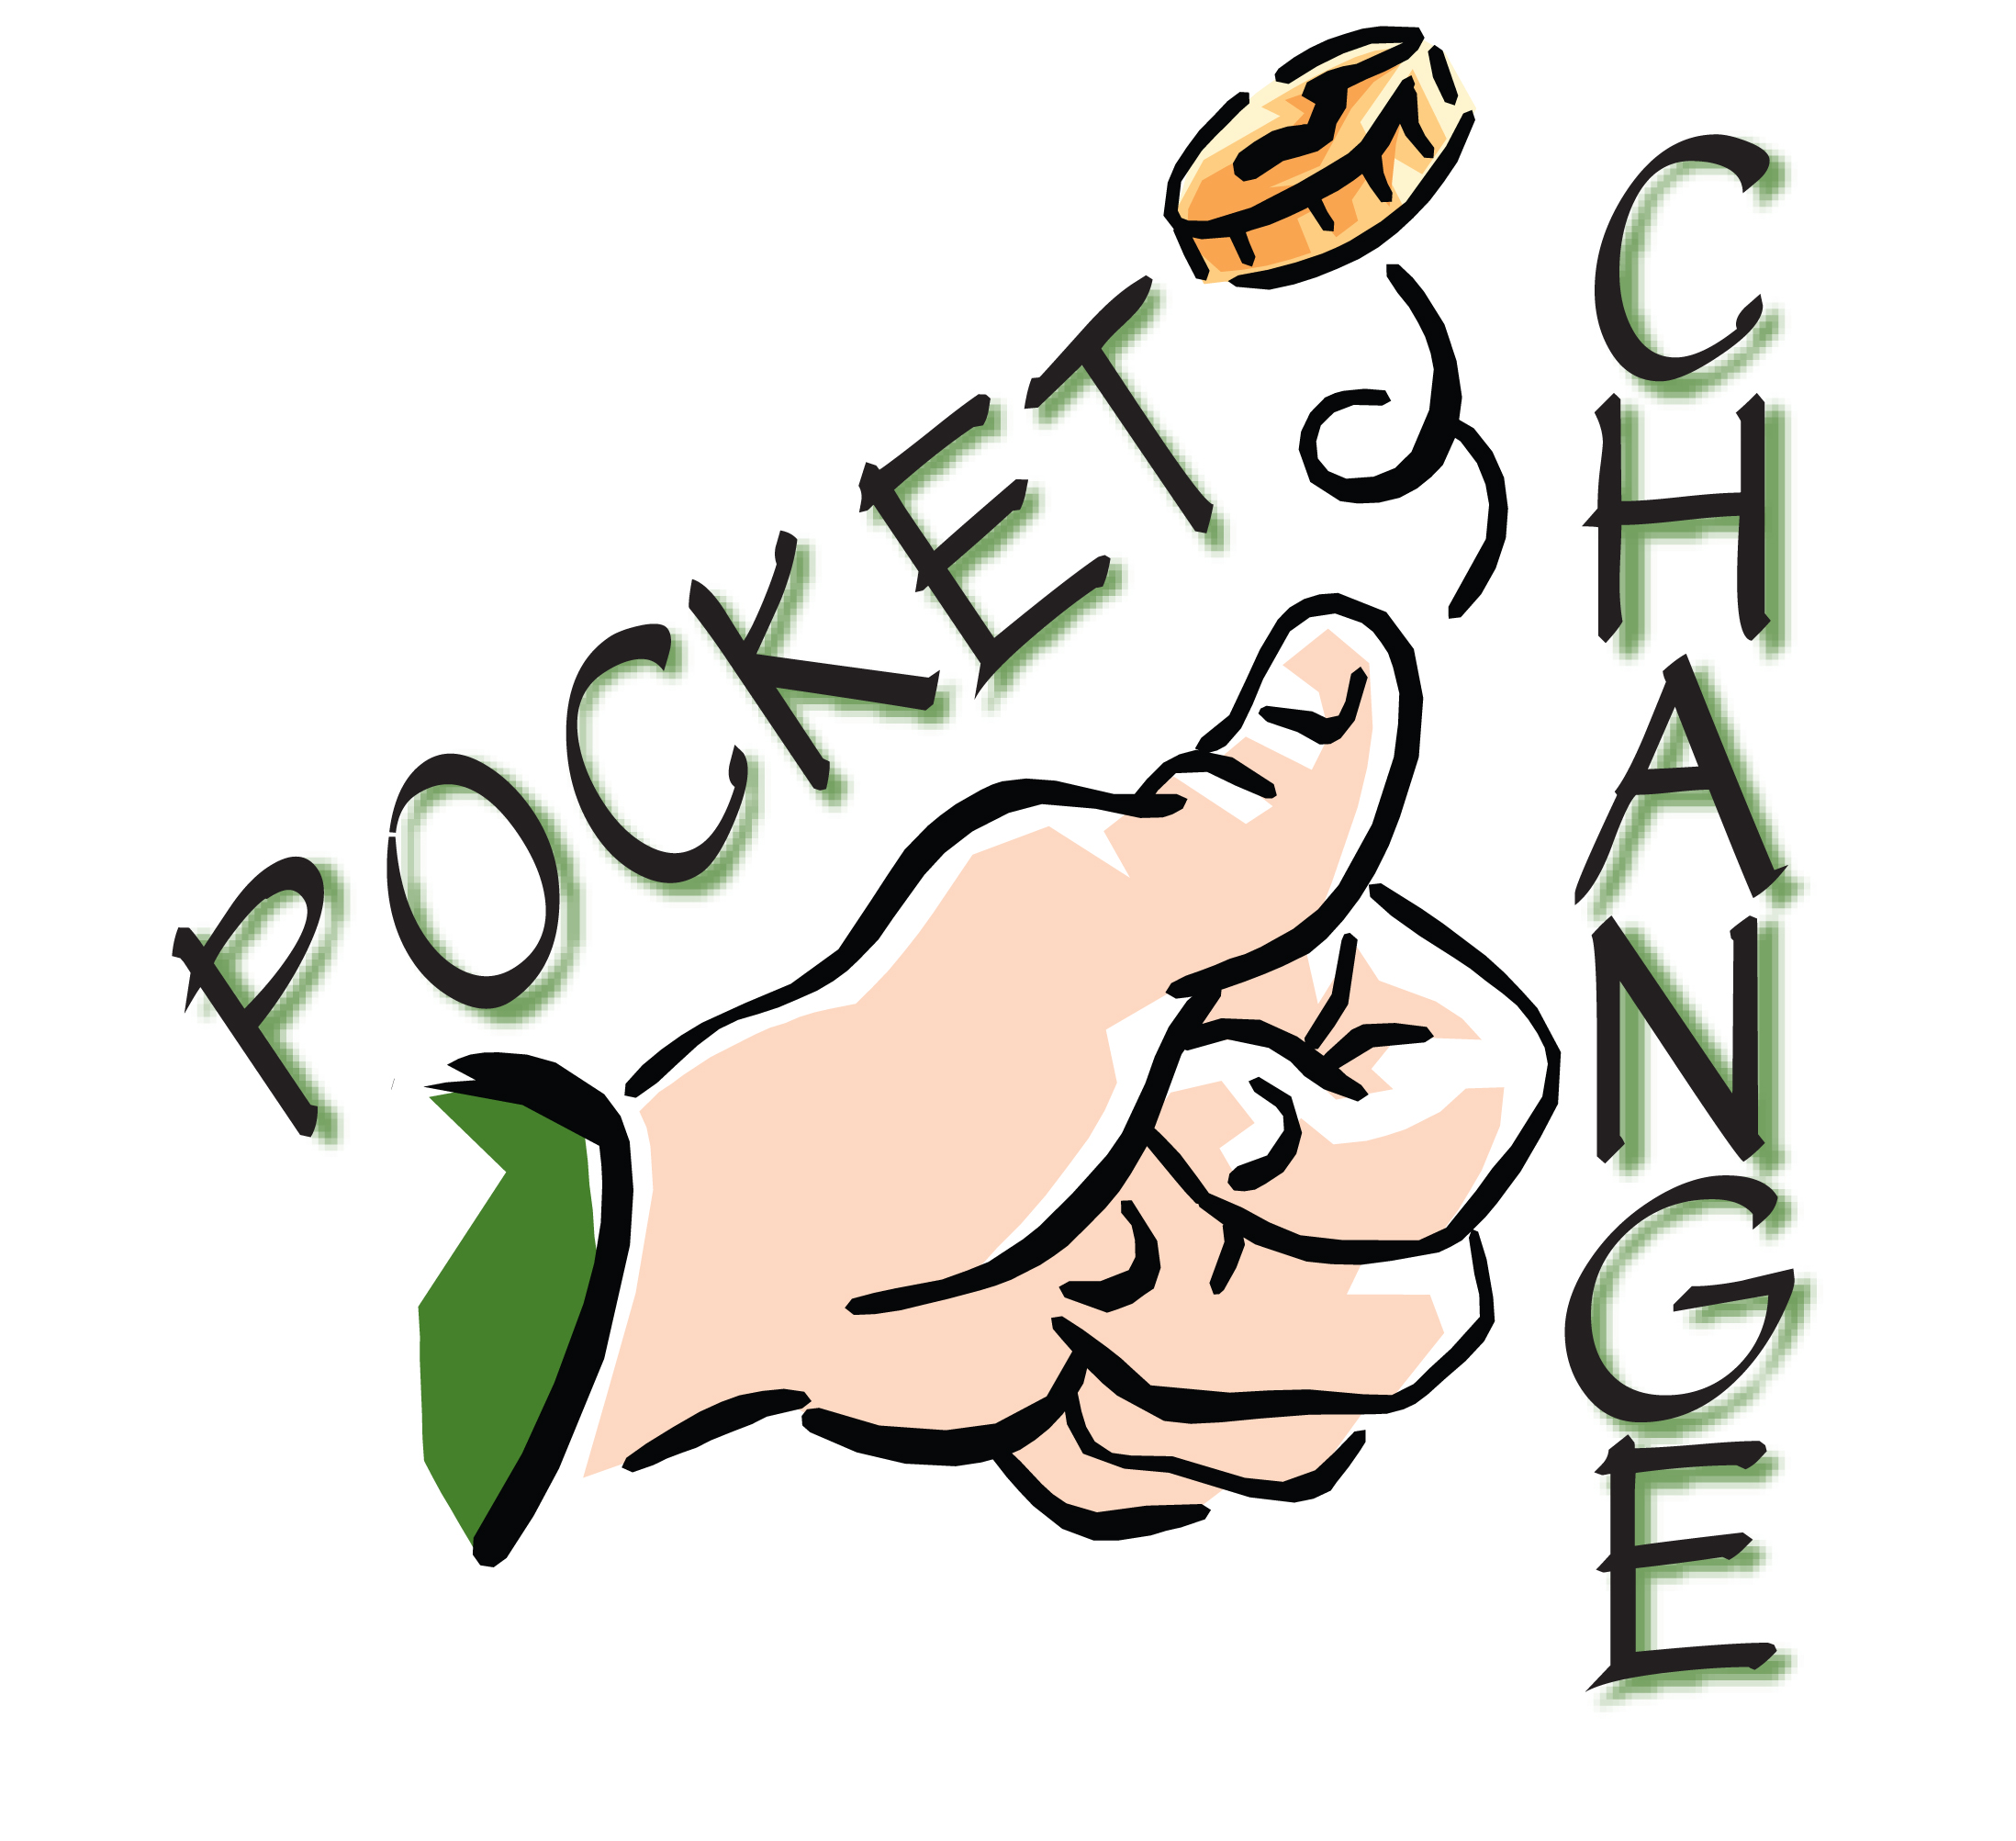 Pocket clipart pocket change. Traconacstab